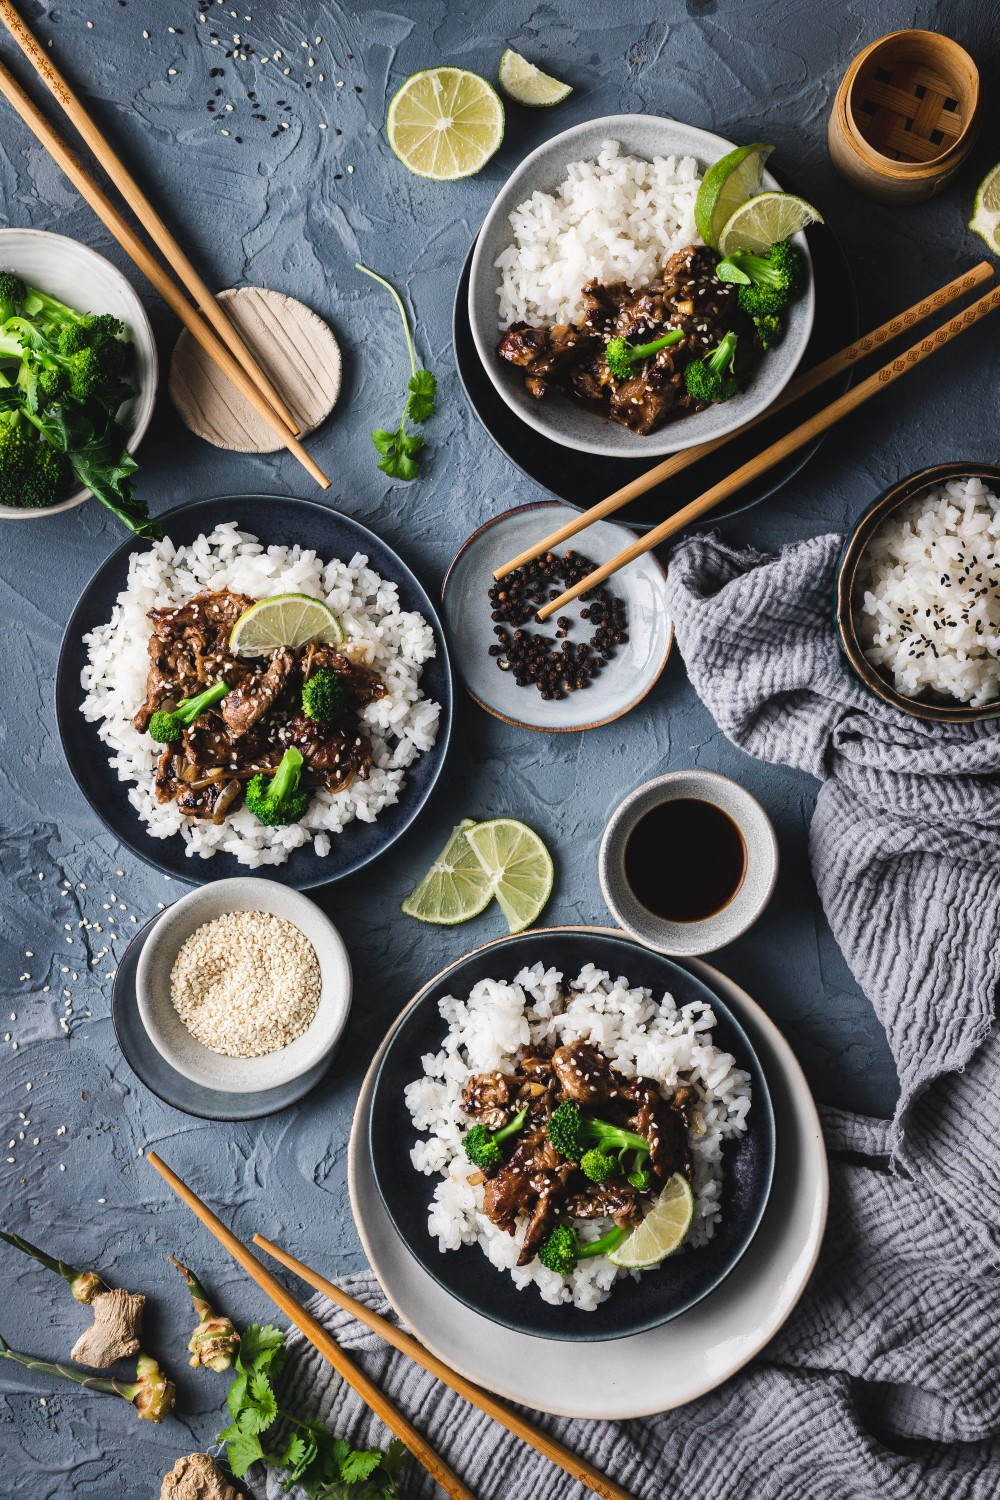 This 30-minute Mongolian beef recipe is all about flavor! It's a definite winner since it's really quick and so so easy to makThis 15-minute Mongolian beef recipe is all about flavor! It's a definite winner since it's really quick and so so easy to make.e.